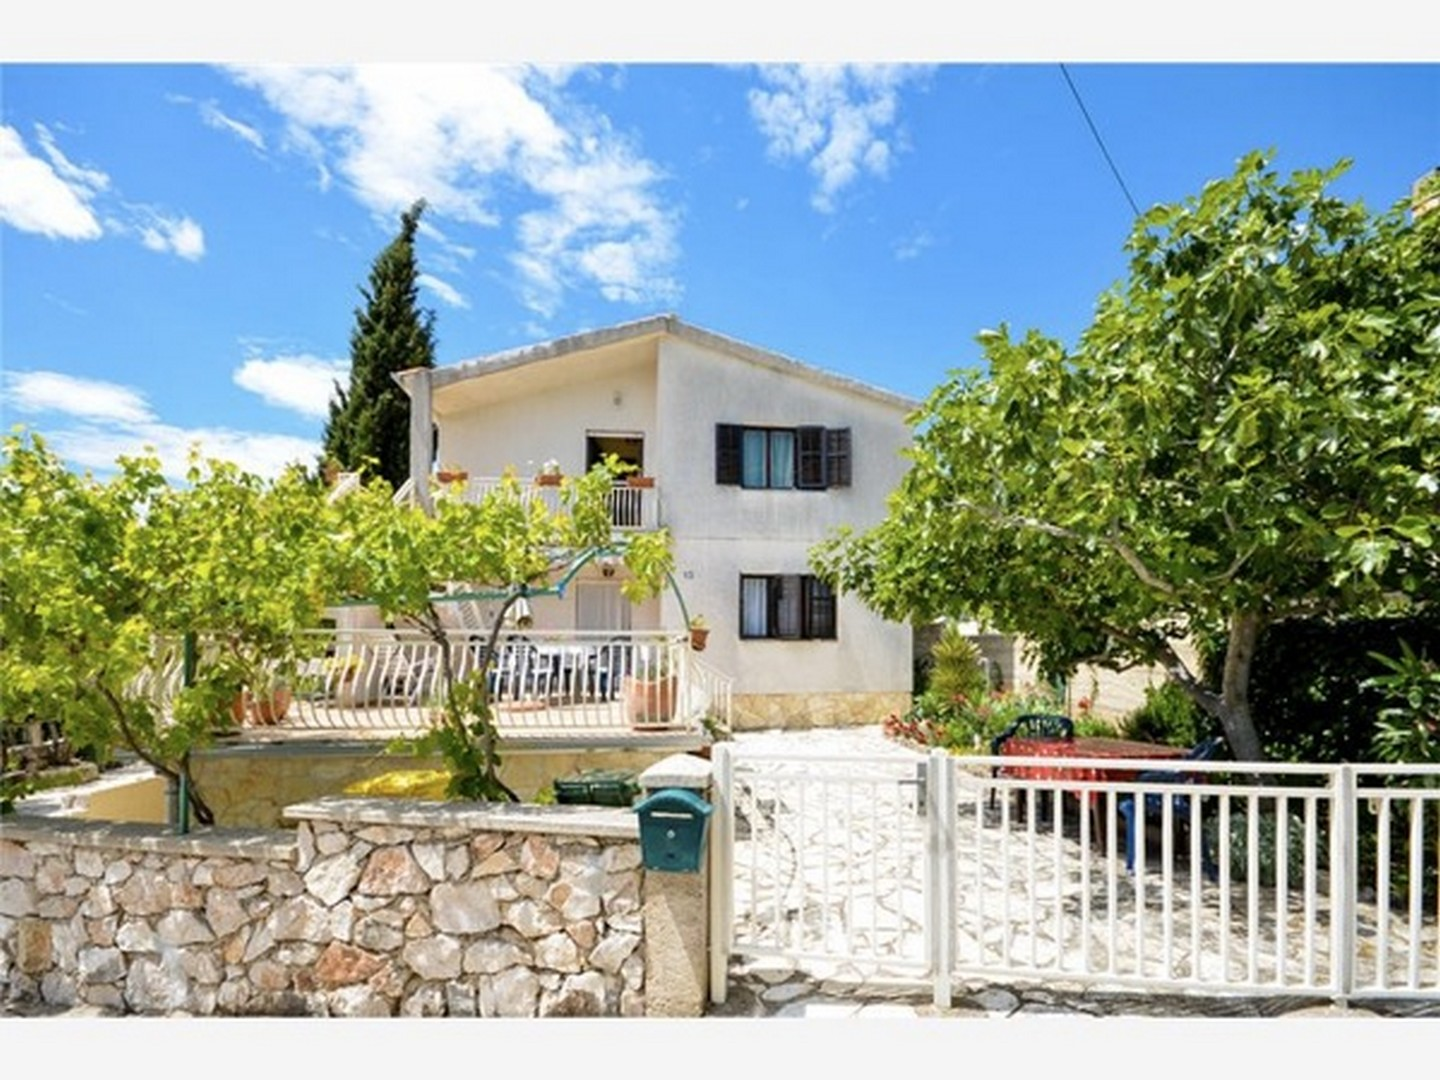 Tisno,ŠIBENSKO-KNINSKA,CROATIA 22240,1 Bedroom Bedrooms,1 BathroomBathrooms,Apartment,1,1003